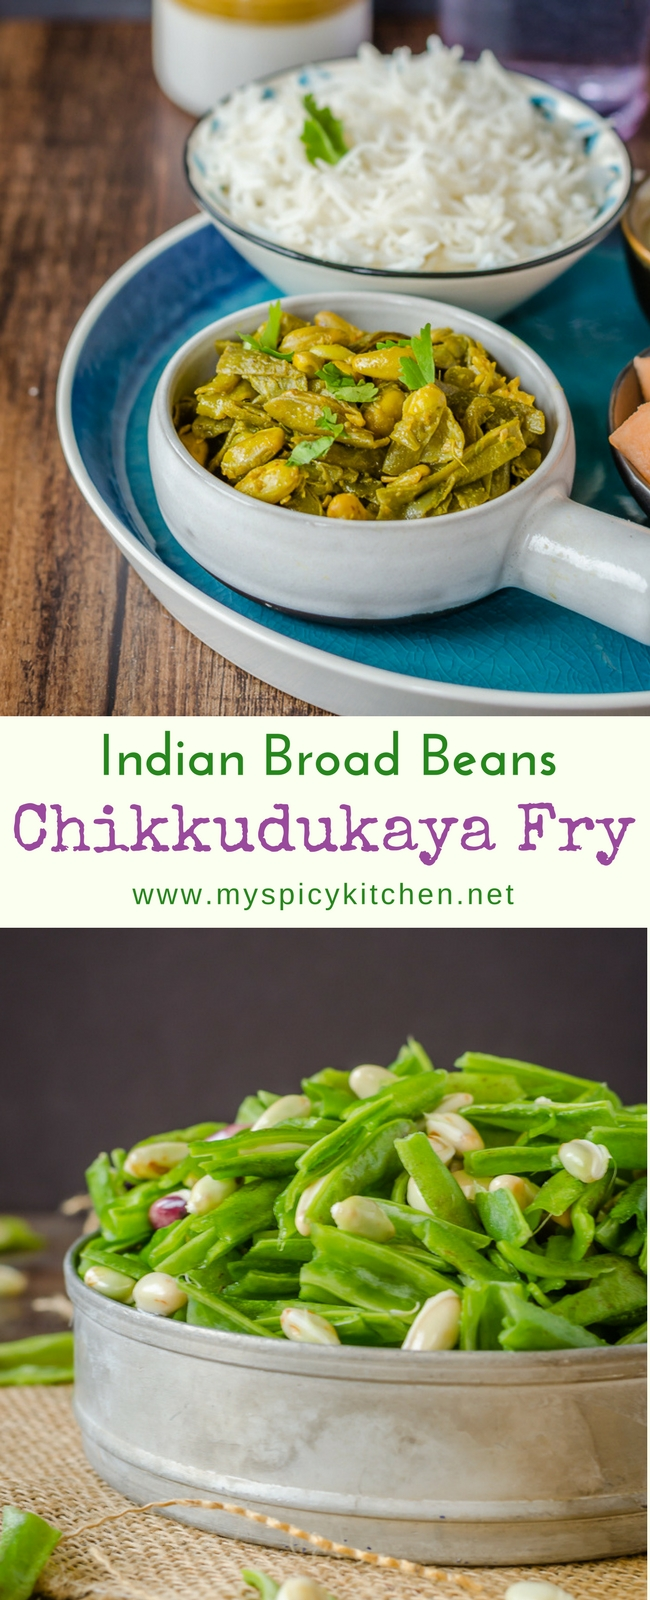 A bowl of chikkudukaya kura or Indian broad beans fry and a bowl of uncooked chikkudukaya